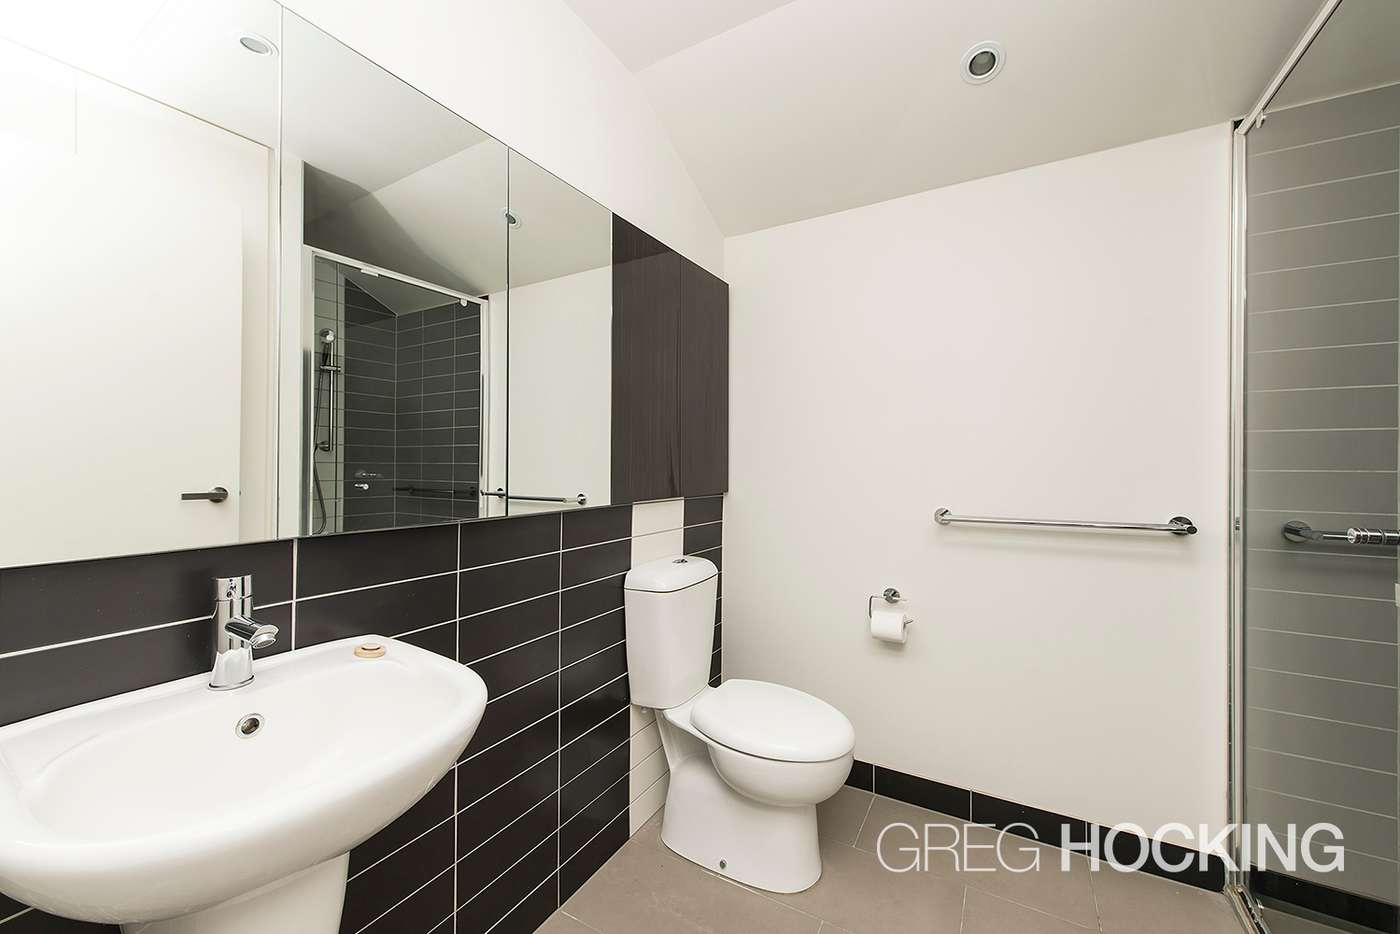 Seventh view of Homely house listing, 202/64 Cross Street, Footscray VIC 3011